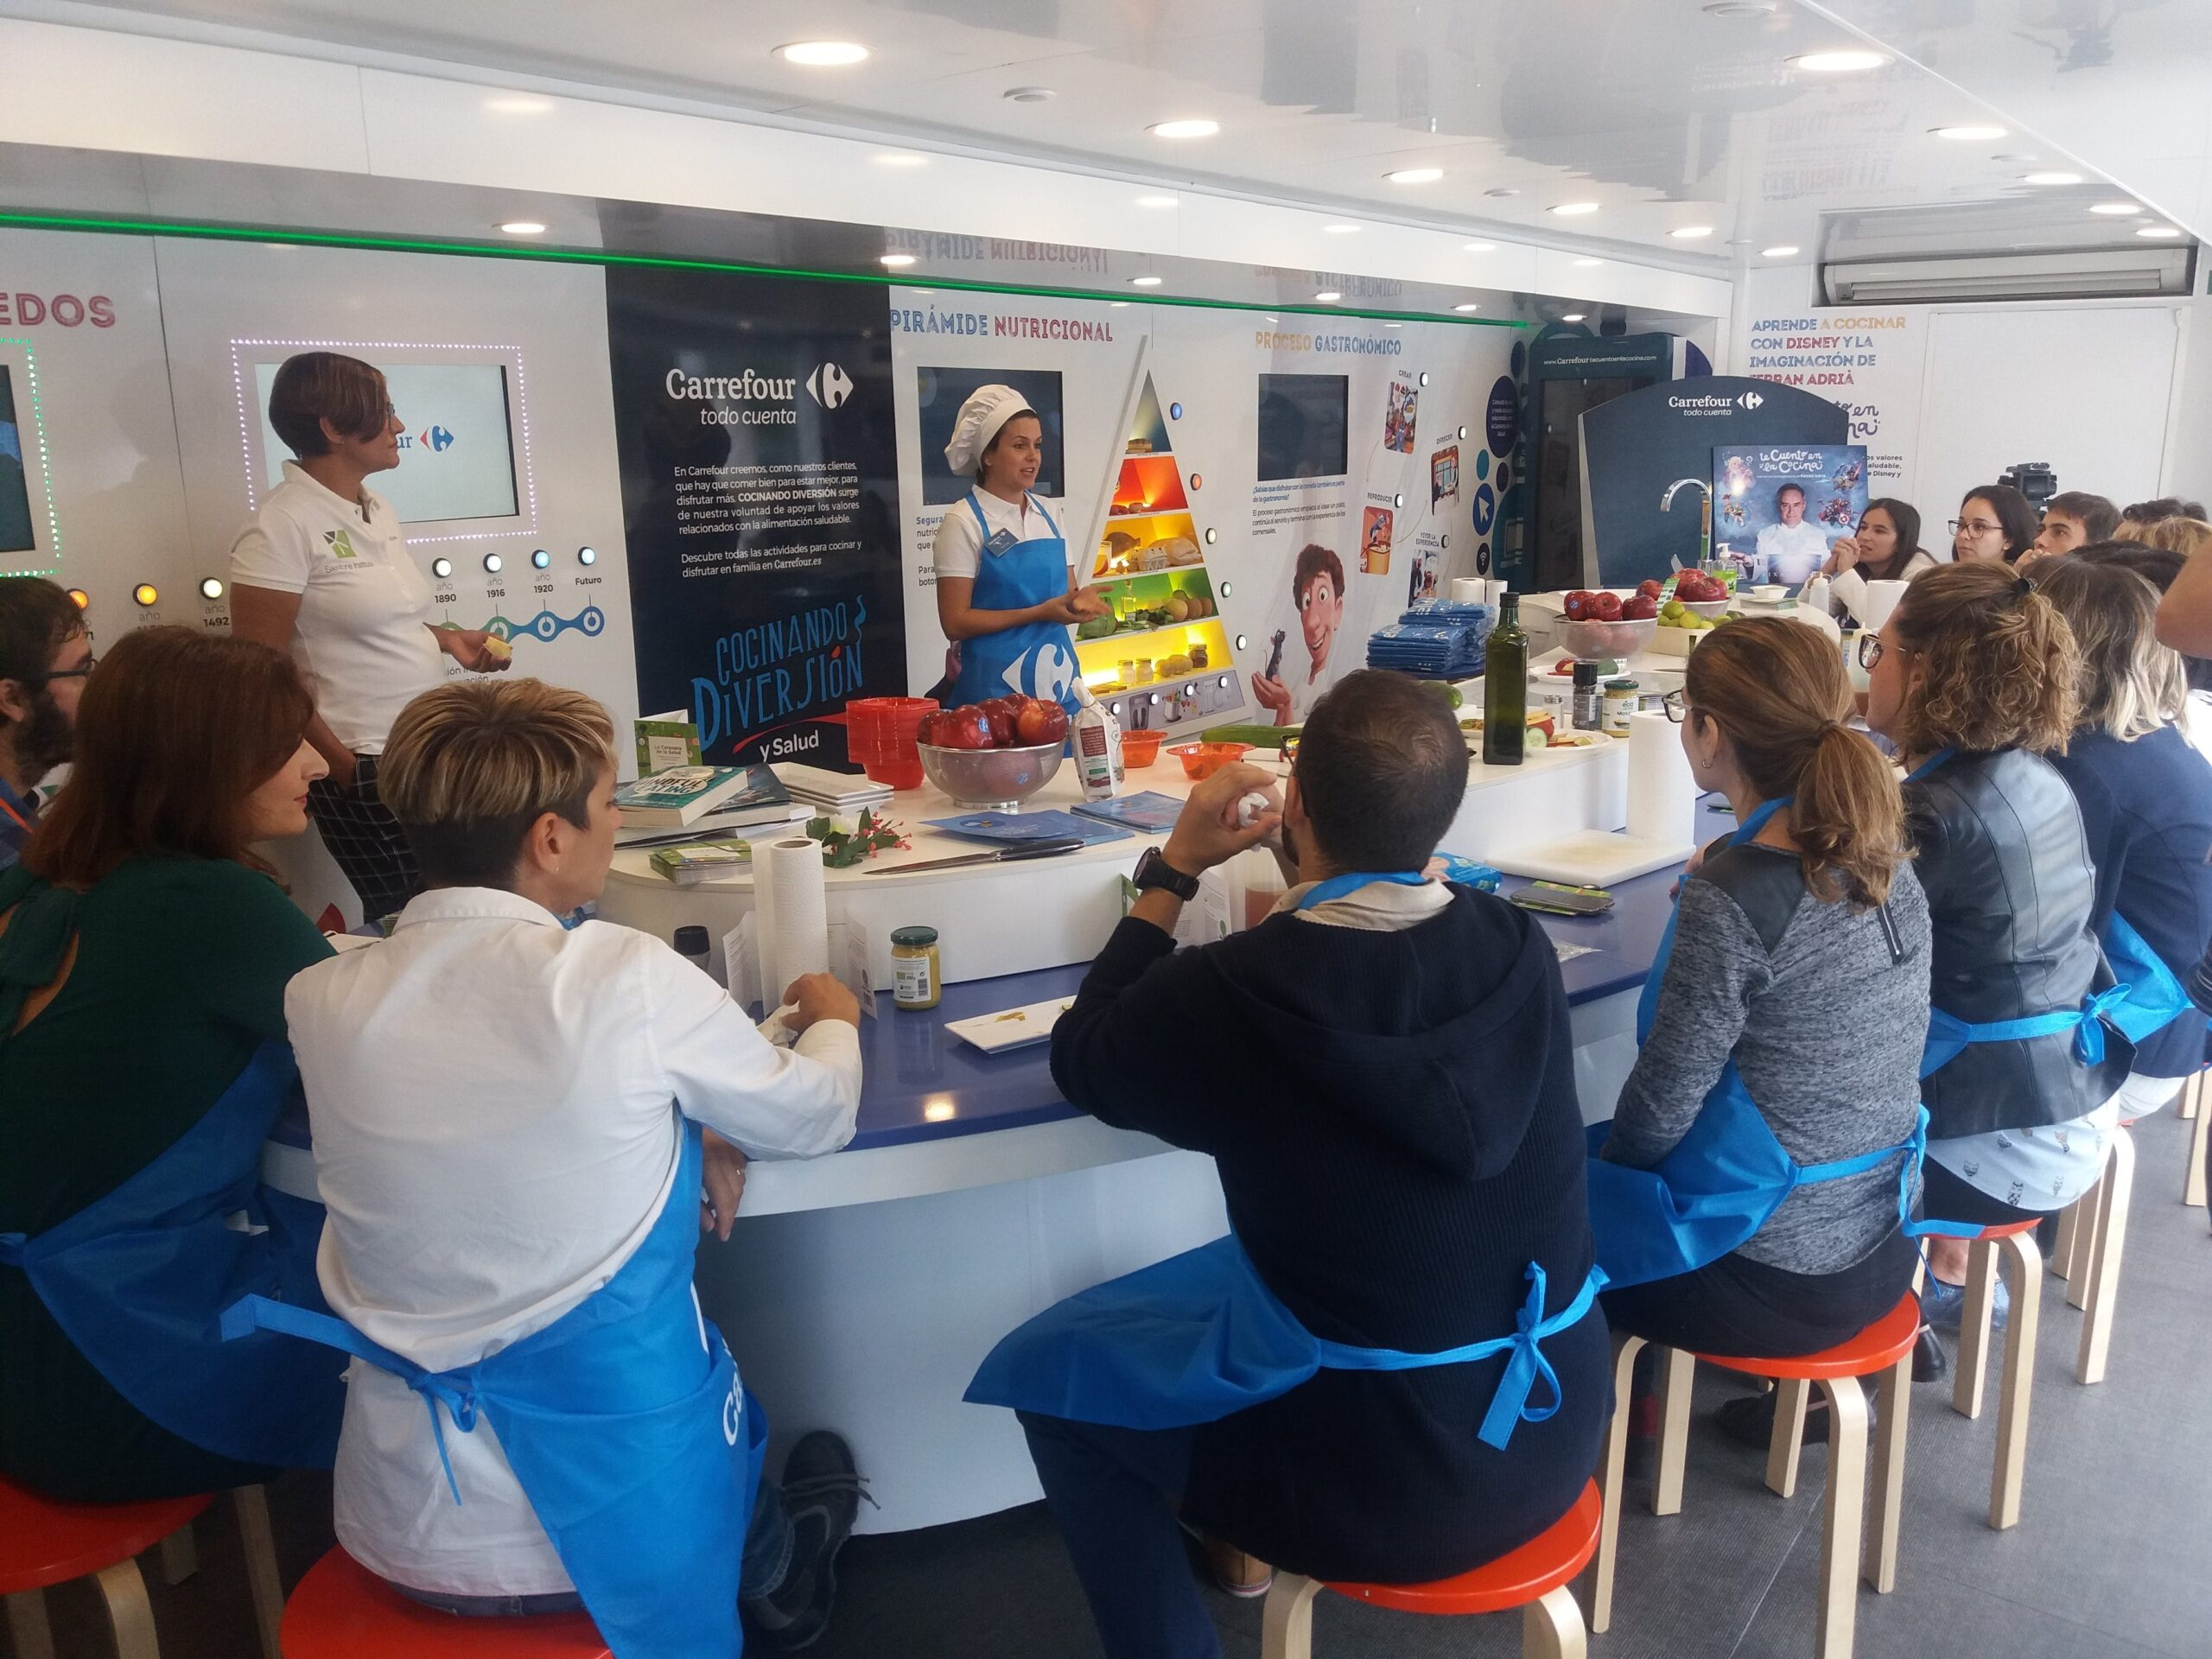 Image of InstitutoSilestone CaravanadelaSalud en Cosentino 5 1 1 scaled in Cosentino promotes good nutrition and food safety - Cosentino